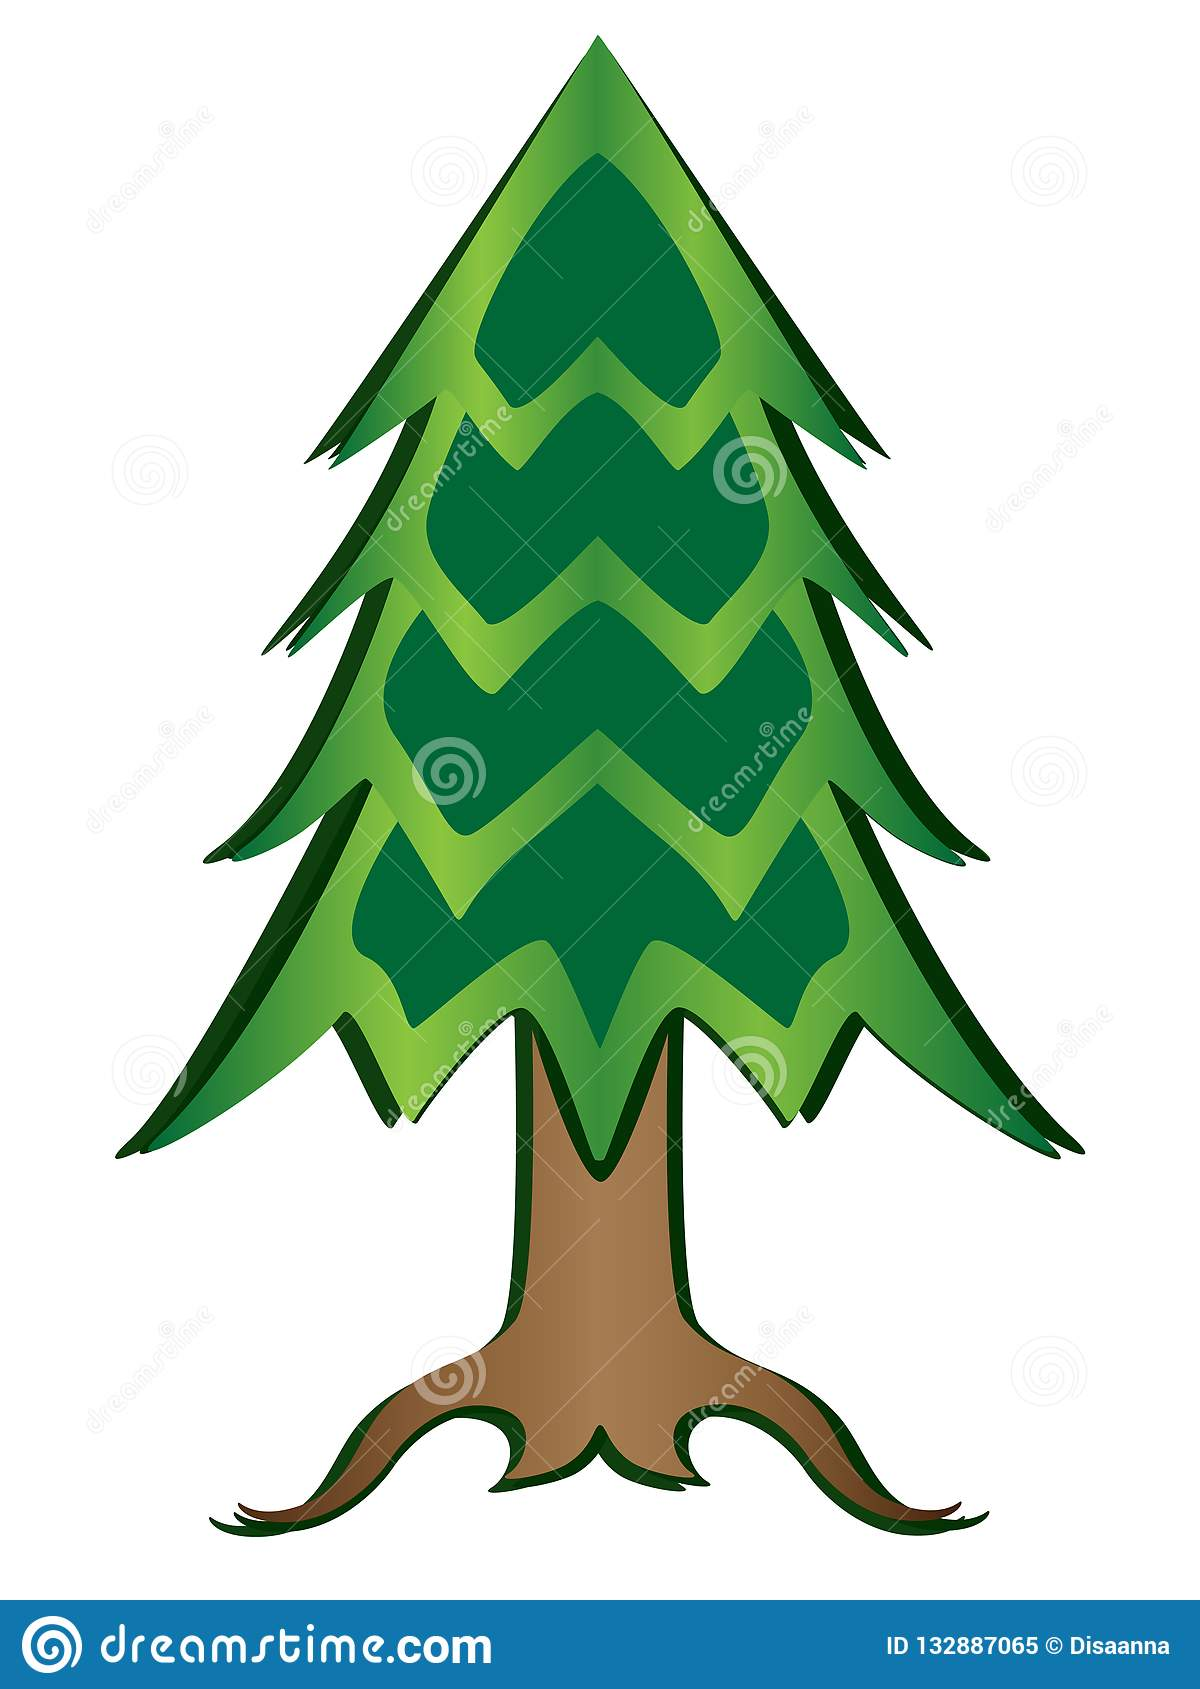 Christmas tree full color picture. Paper cut conifer tree vector illustration with gradient.